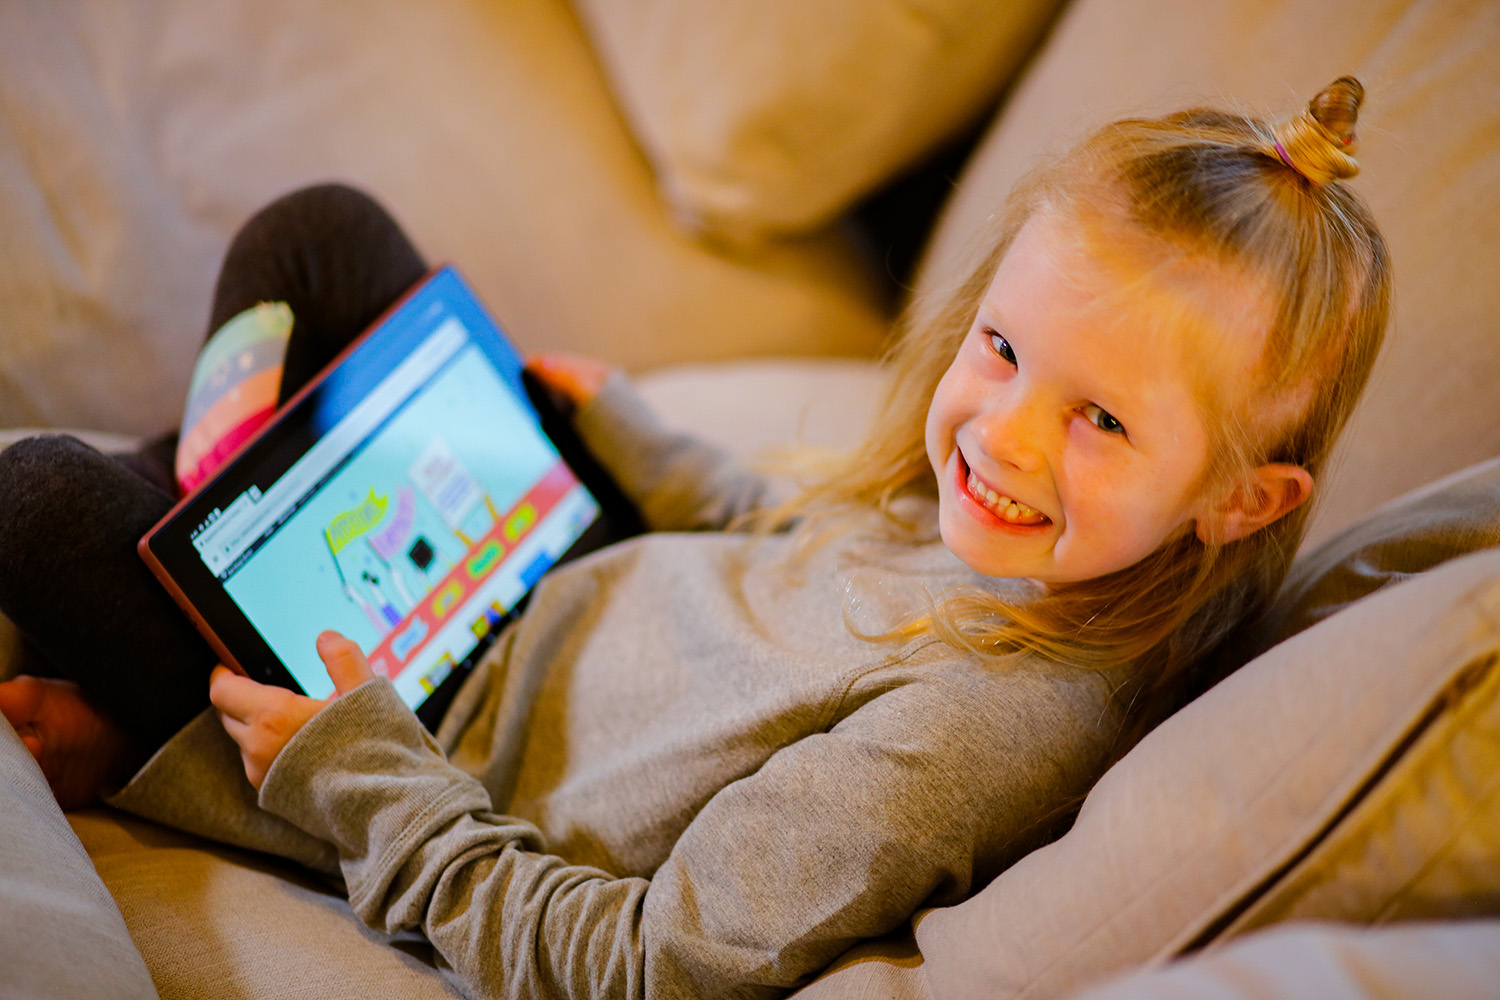 Looking for healthy screen time tips? These tips from a teacher and behavior specialist are spot on!